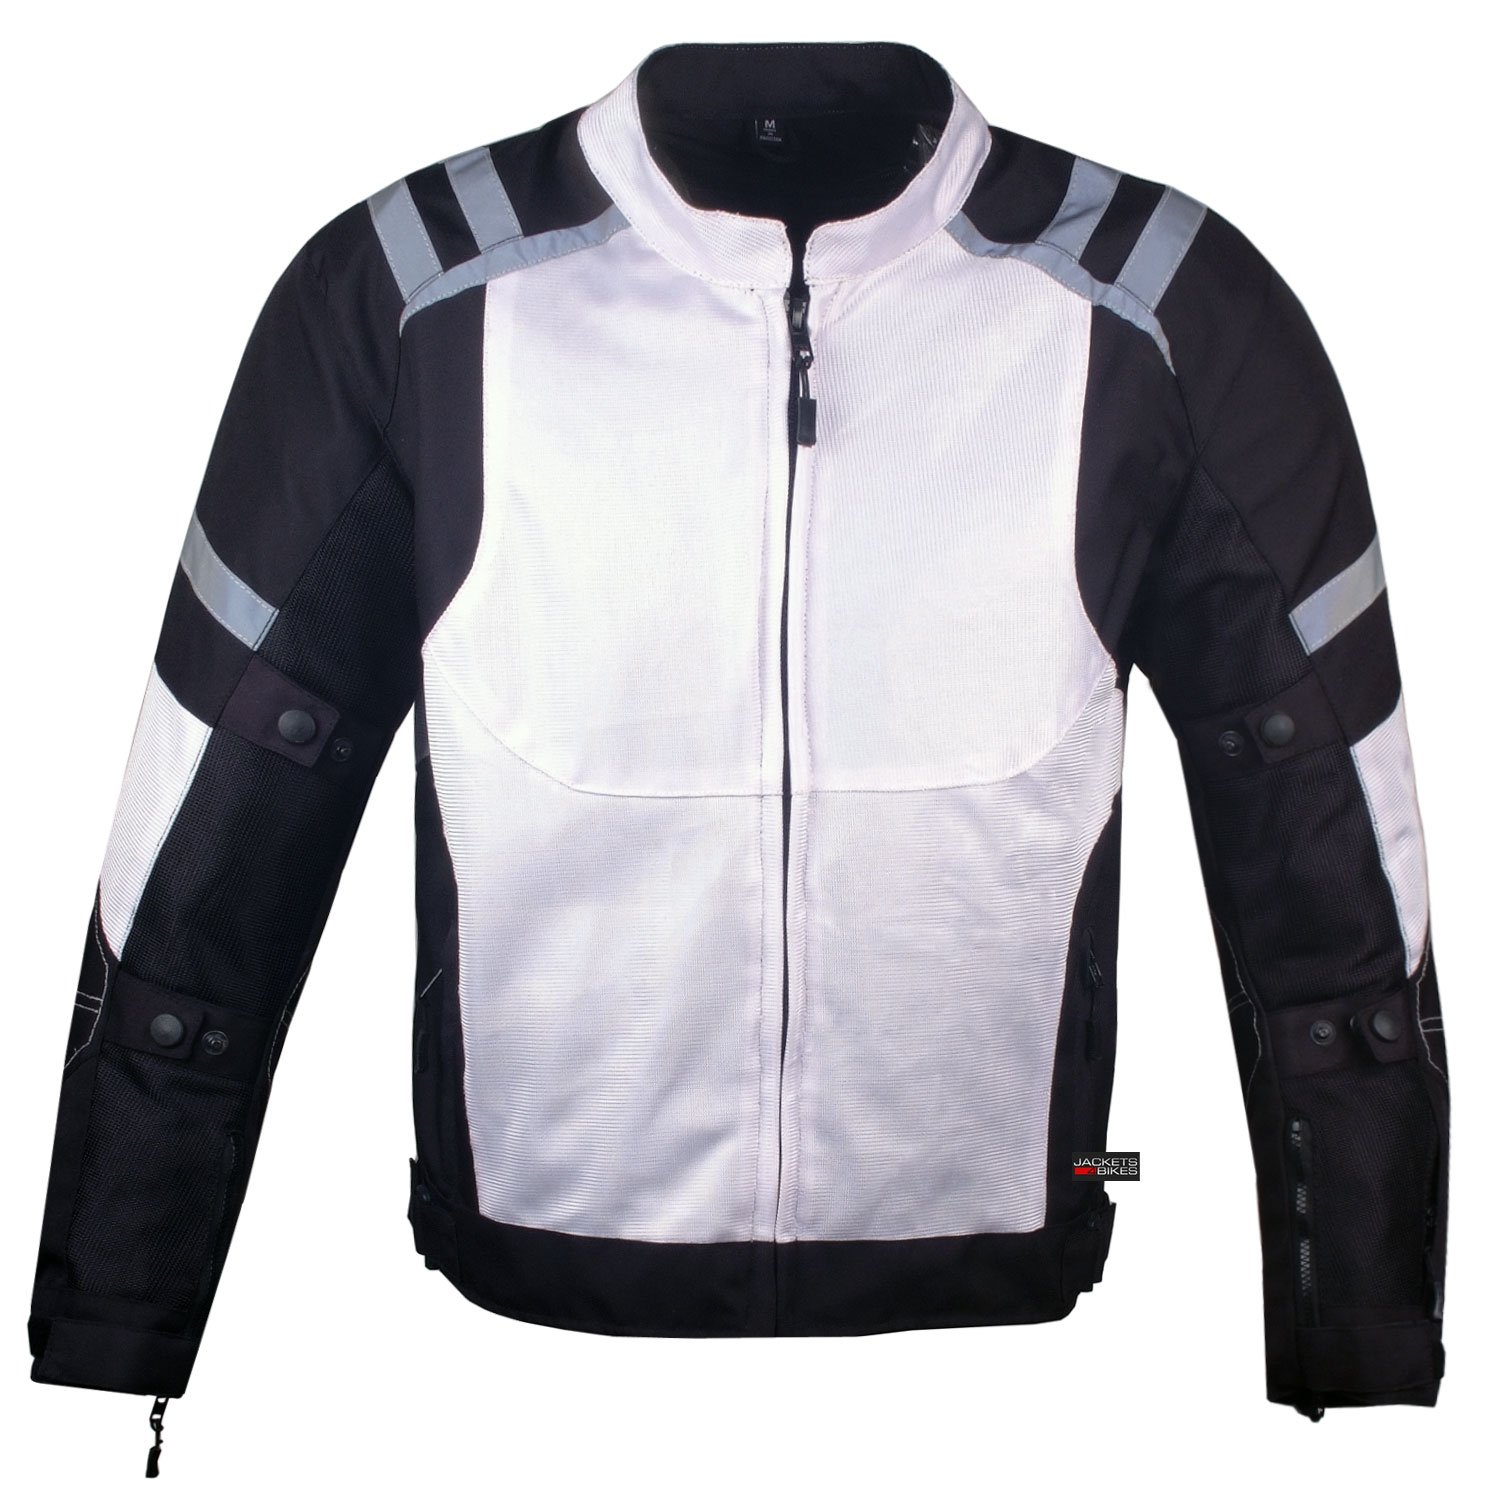 Mens Storm Mesh Summer Armored Reflective Waterproof White Motorcycle Jacket XL